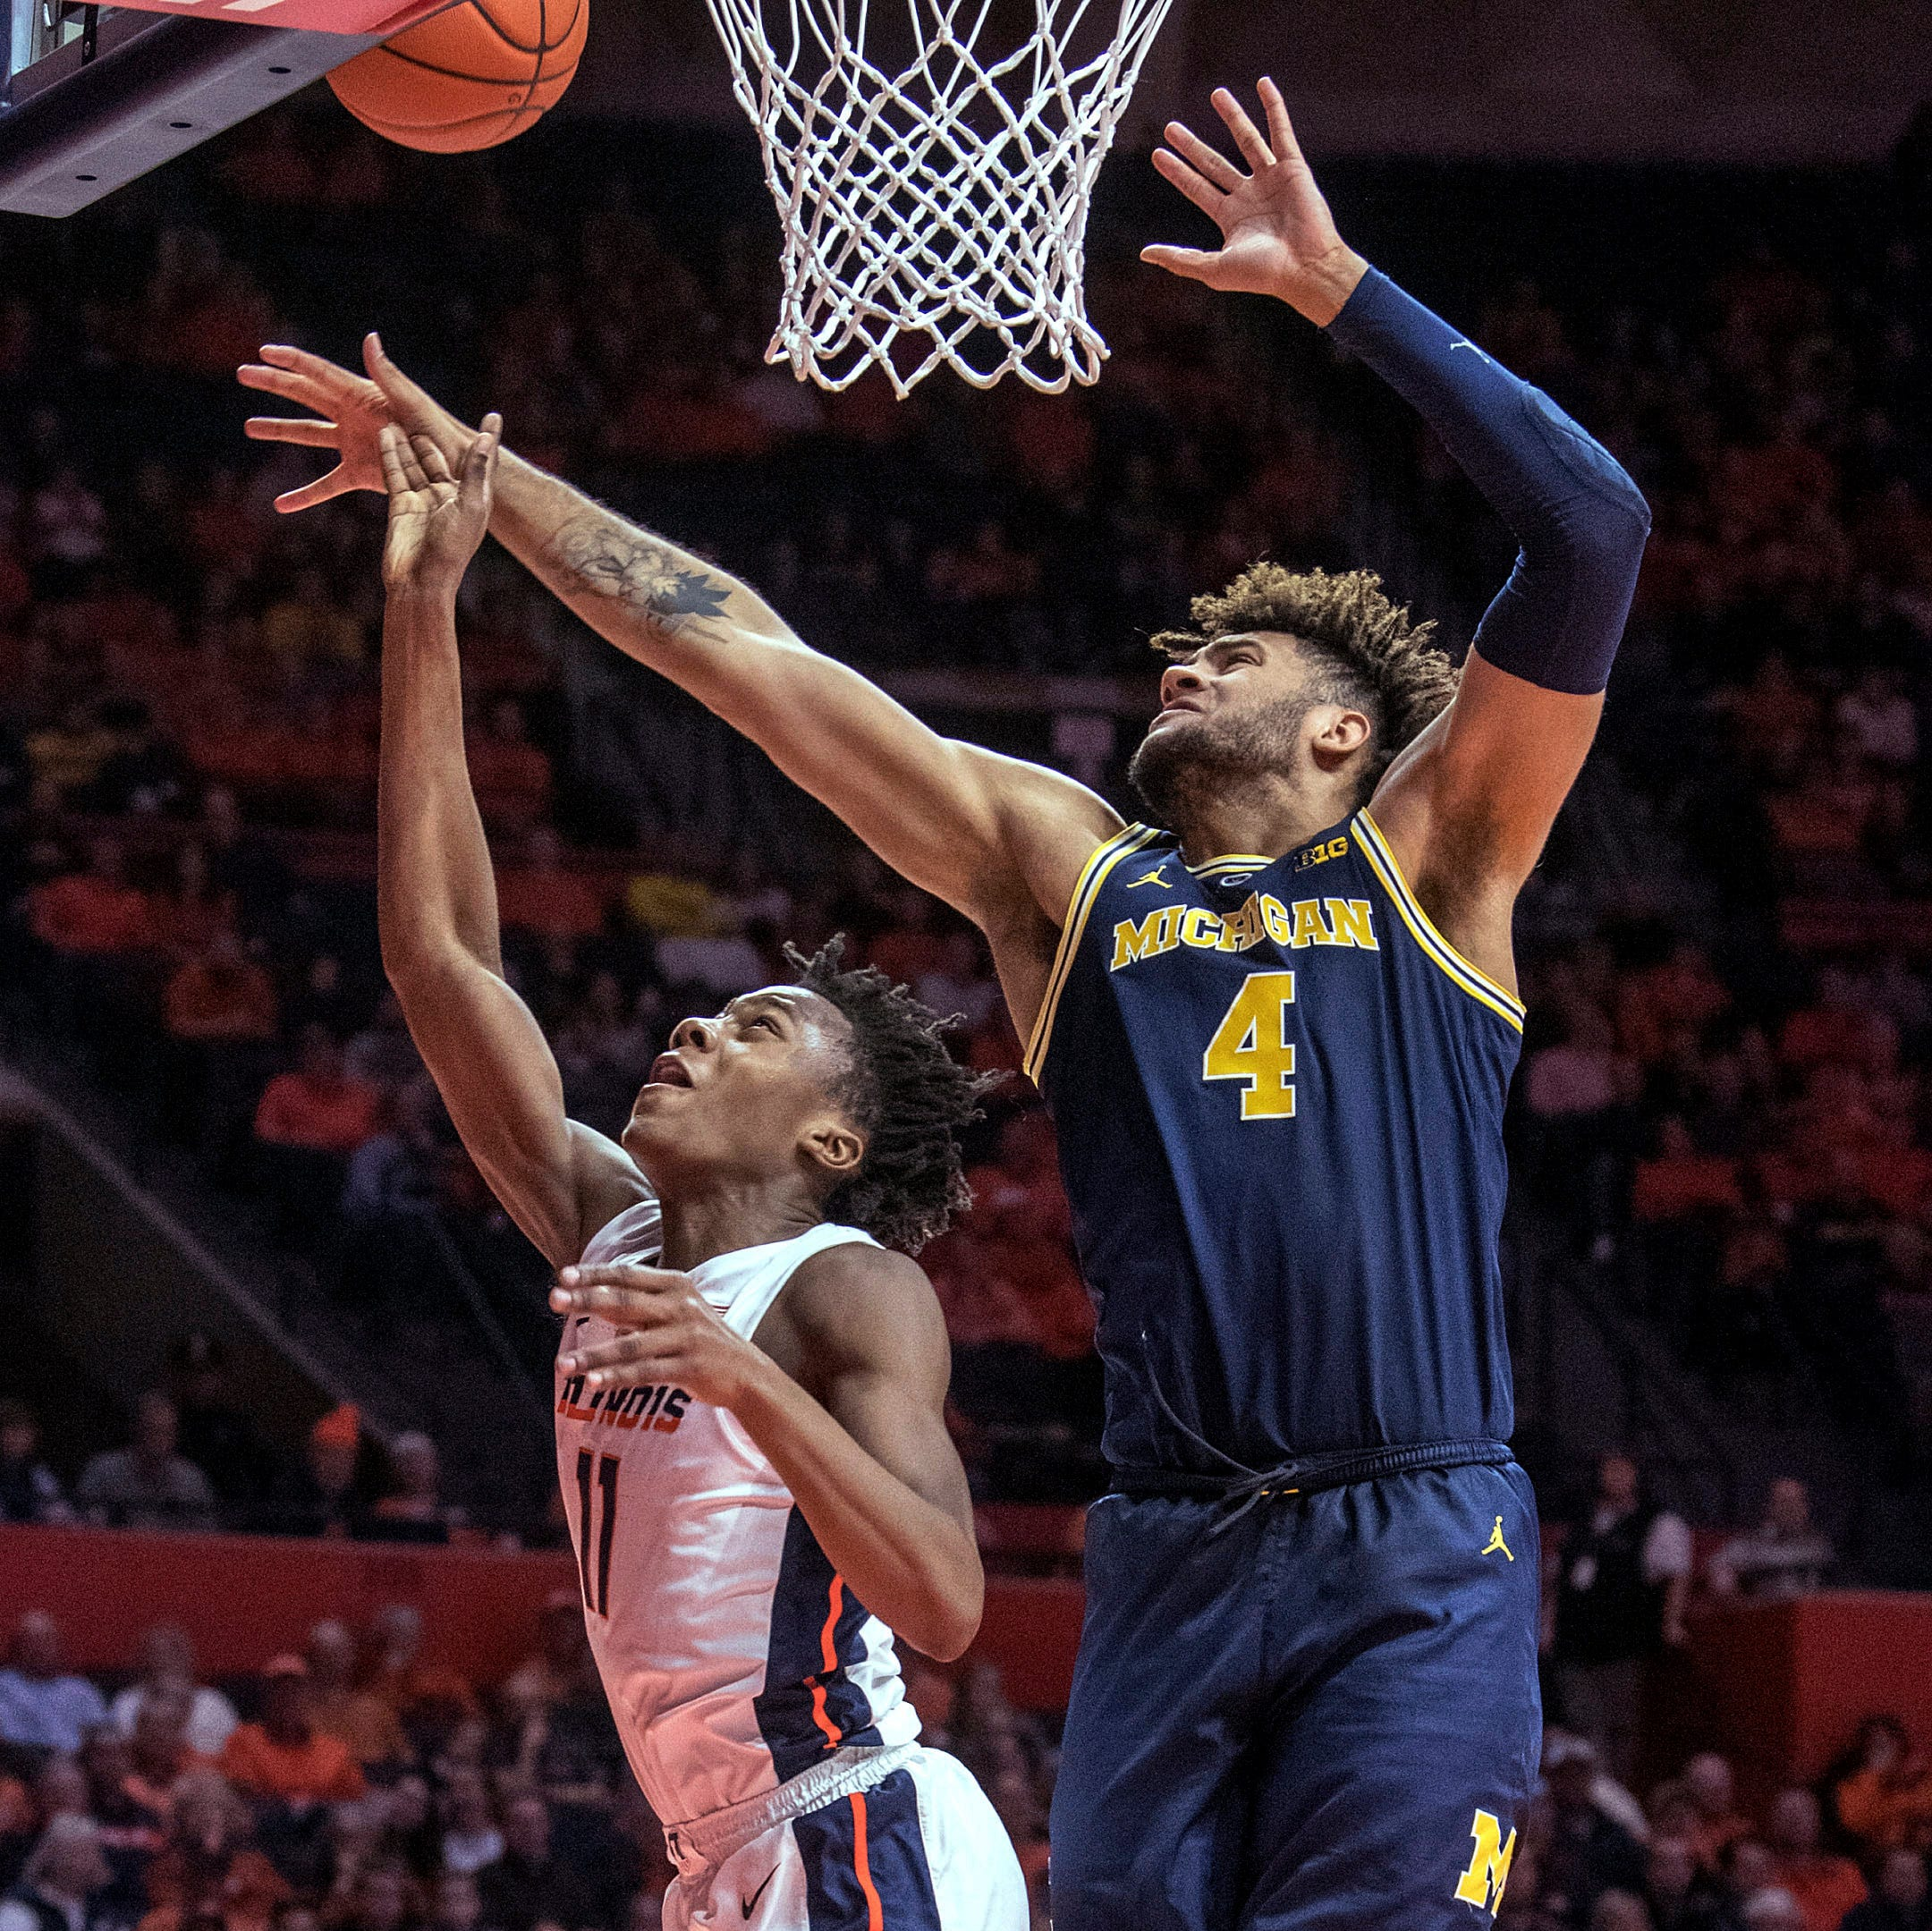 Michigan basketball ties record with 16-0 start after win at Illinois